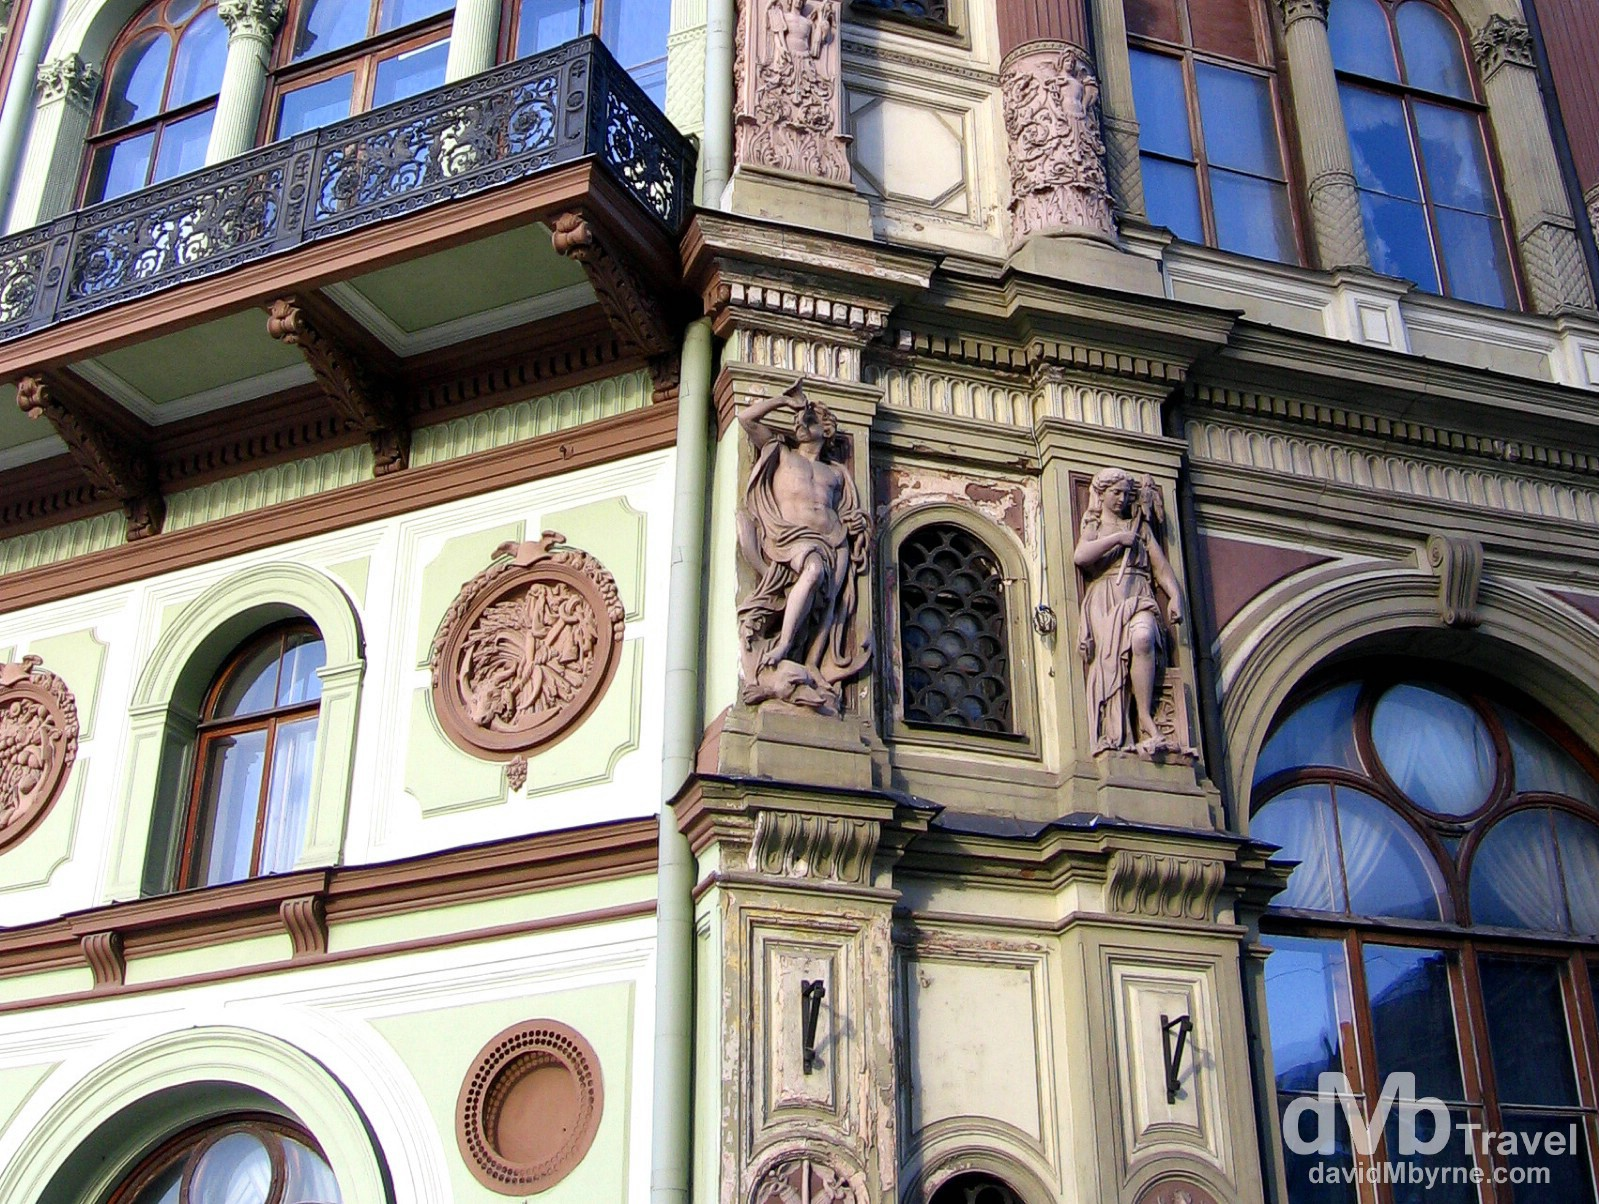 Art Nouveau architecture in the Old Town of Riga, Latvia. March 3, 2006.